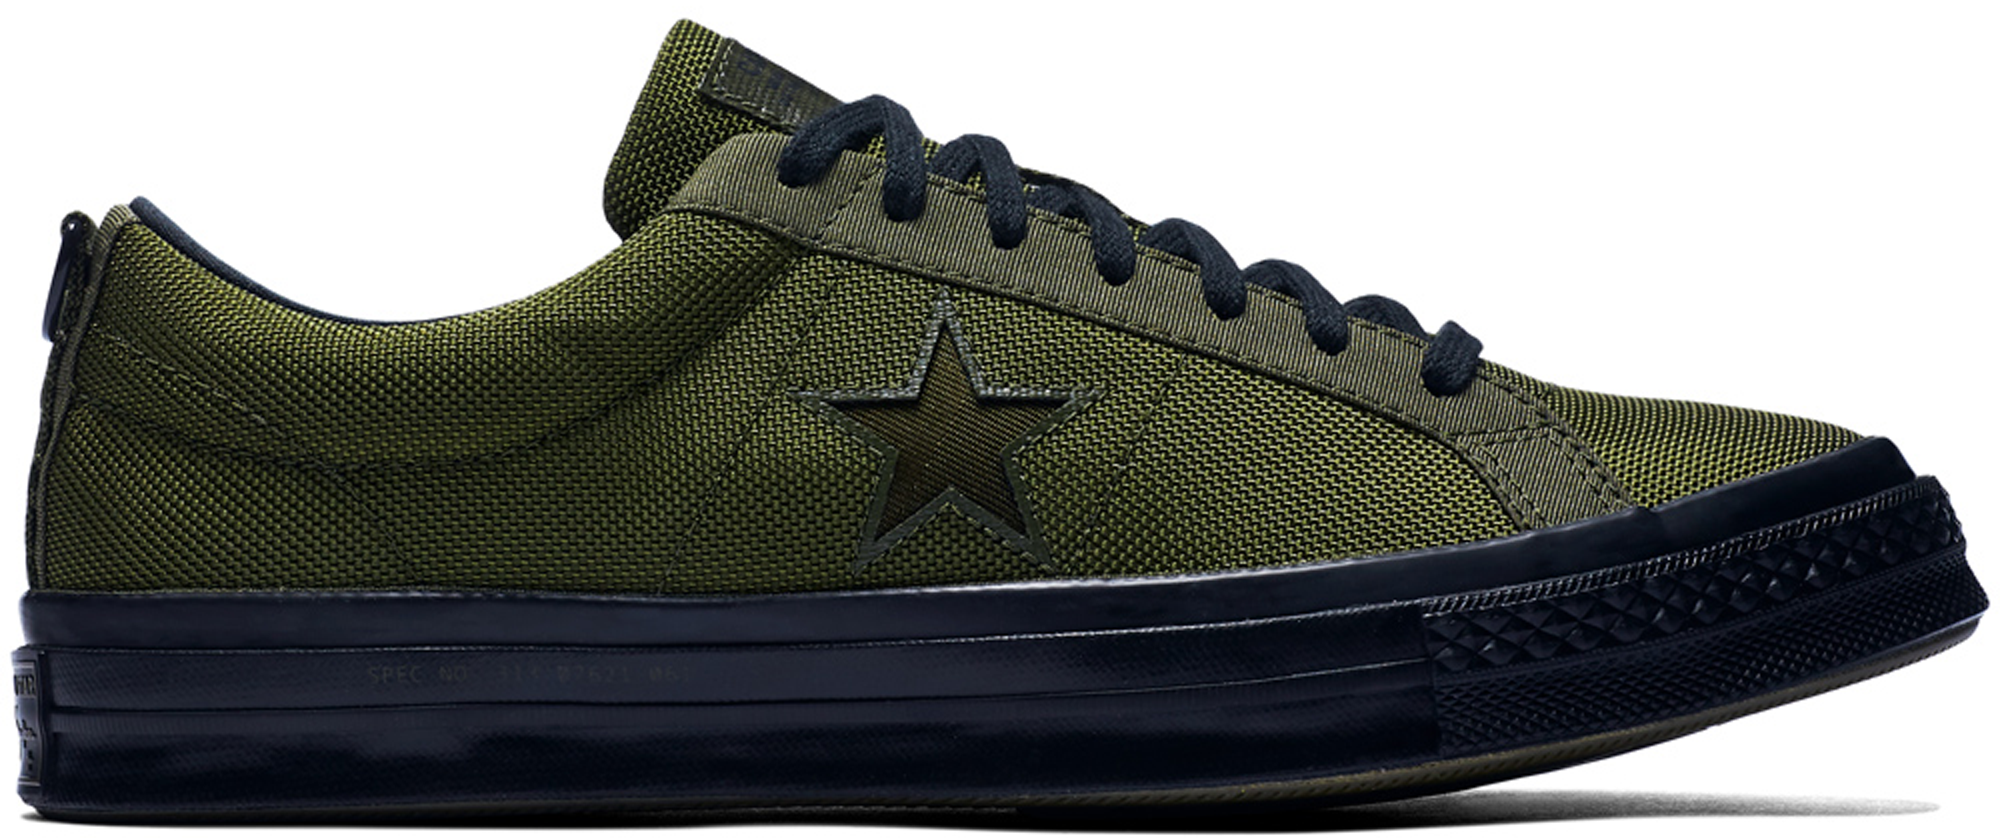 Converse One Star Ox Carhartt WIP Olive